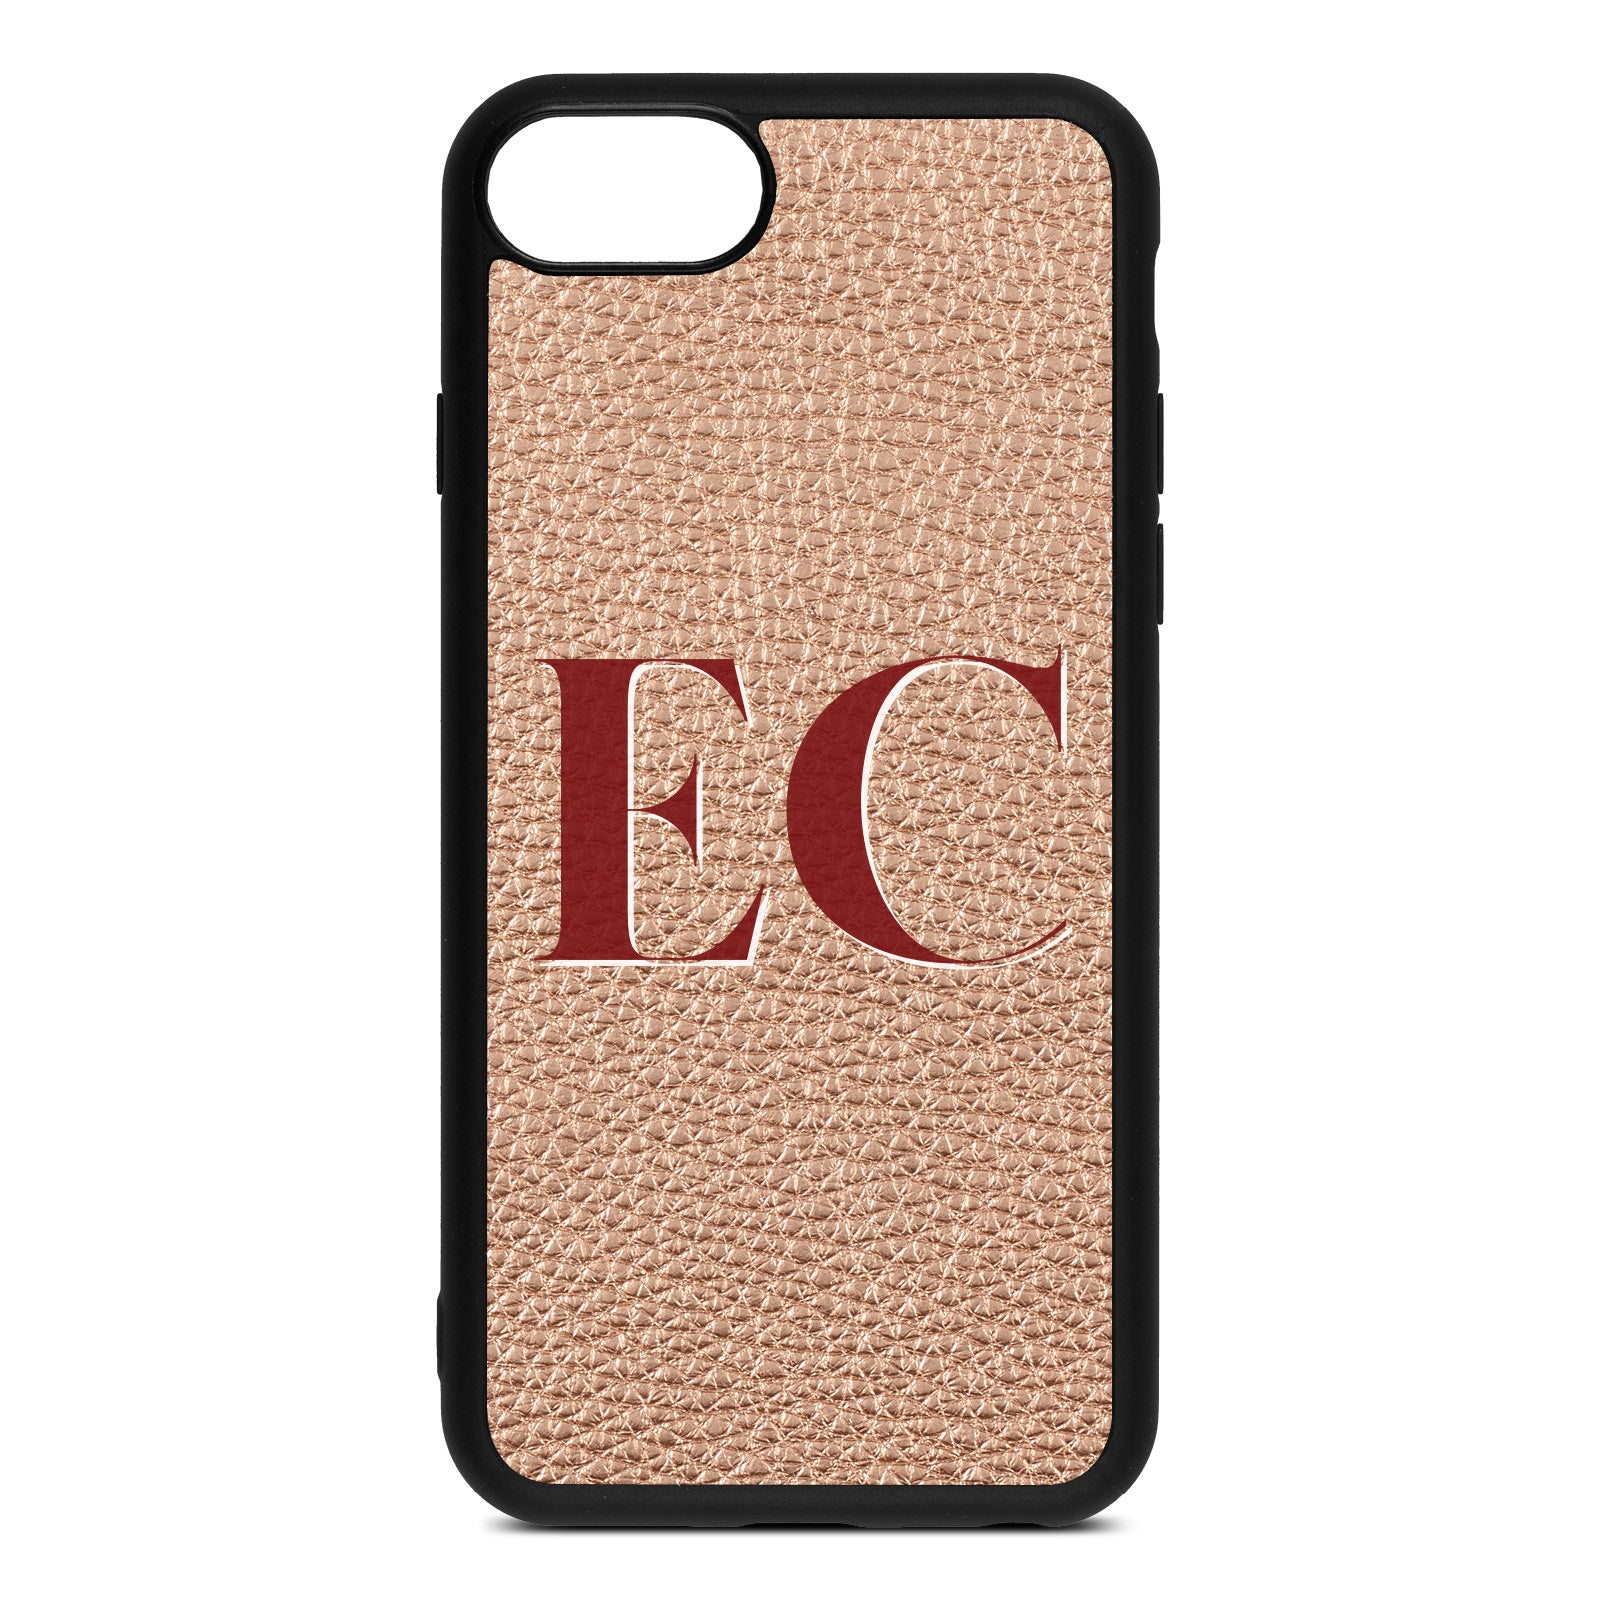 iPhone 8 Rose Gold Pebble Leather Case